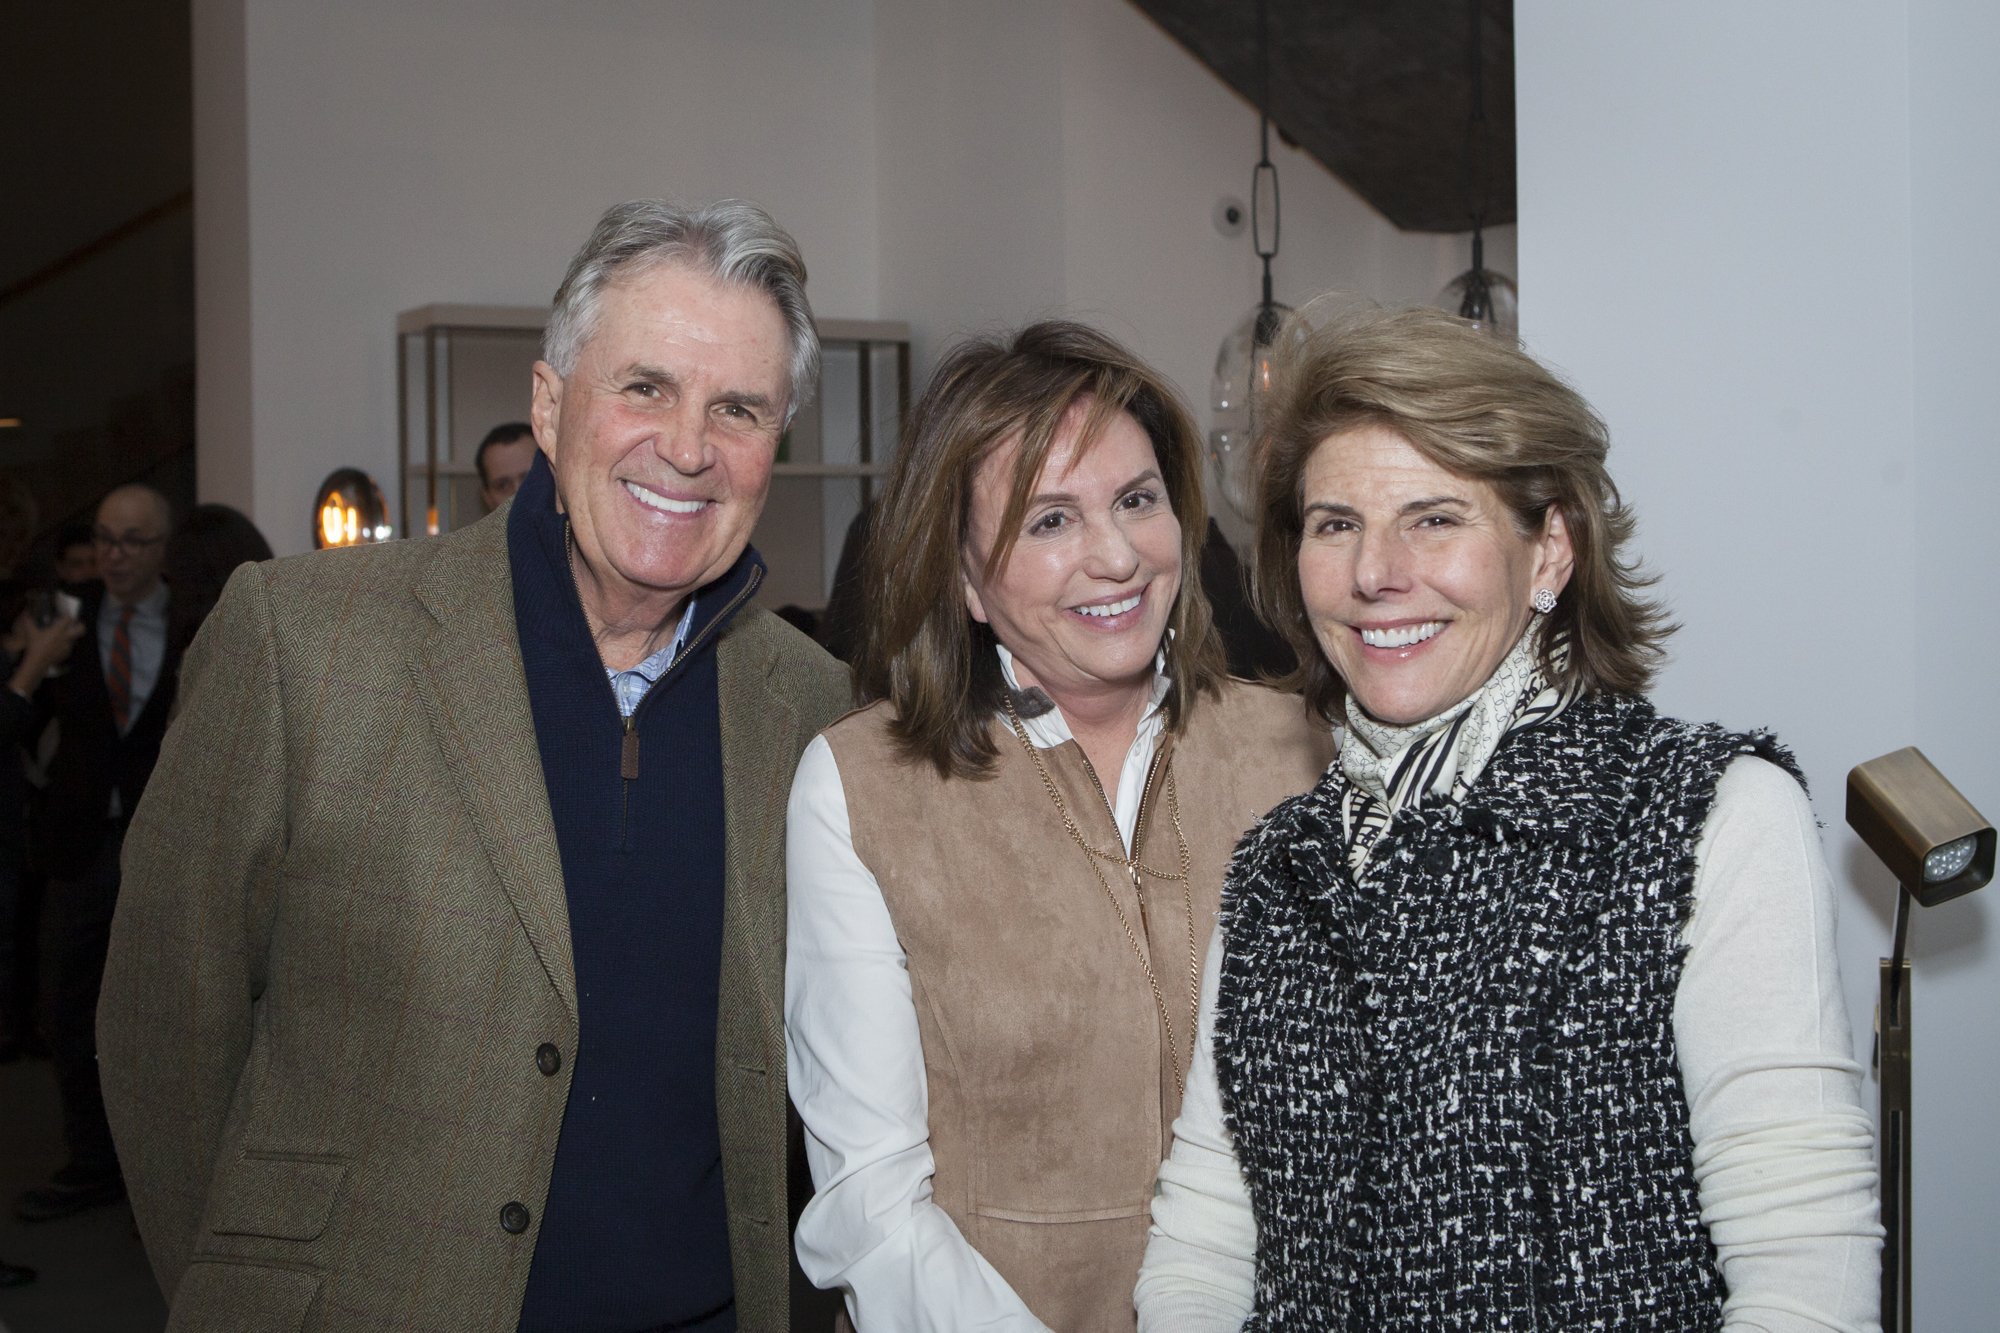 Robert Johnston, Christy Ferer and Susan Francesca Orsini